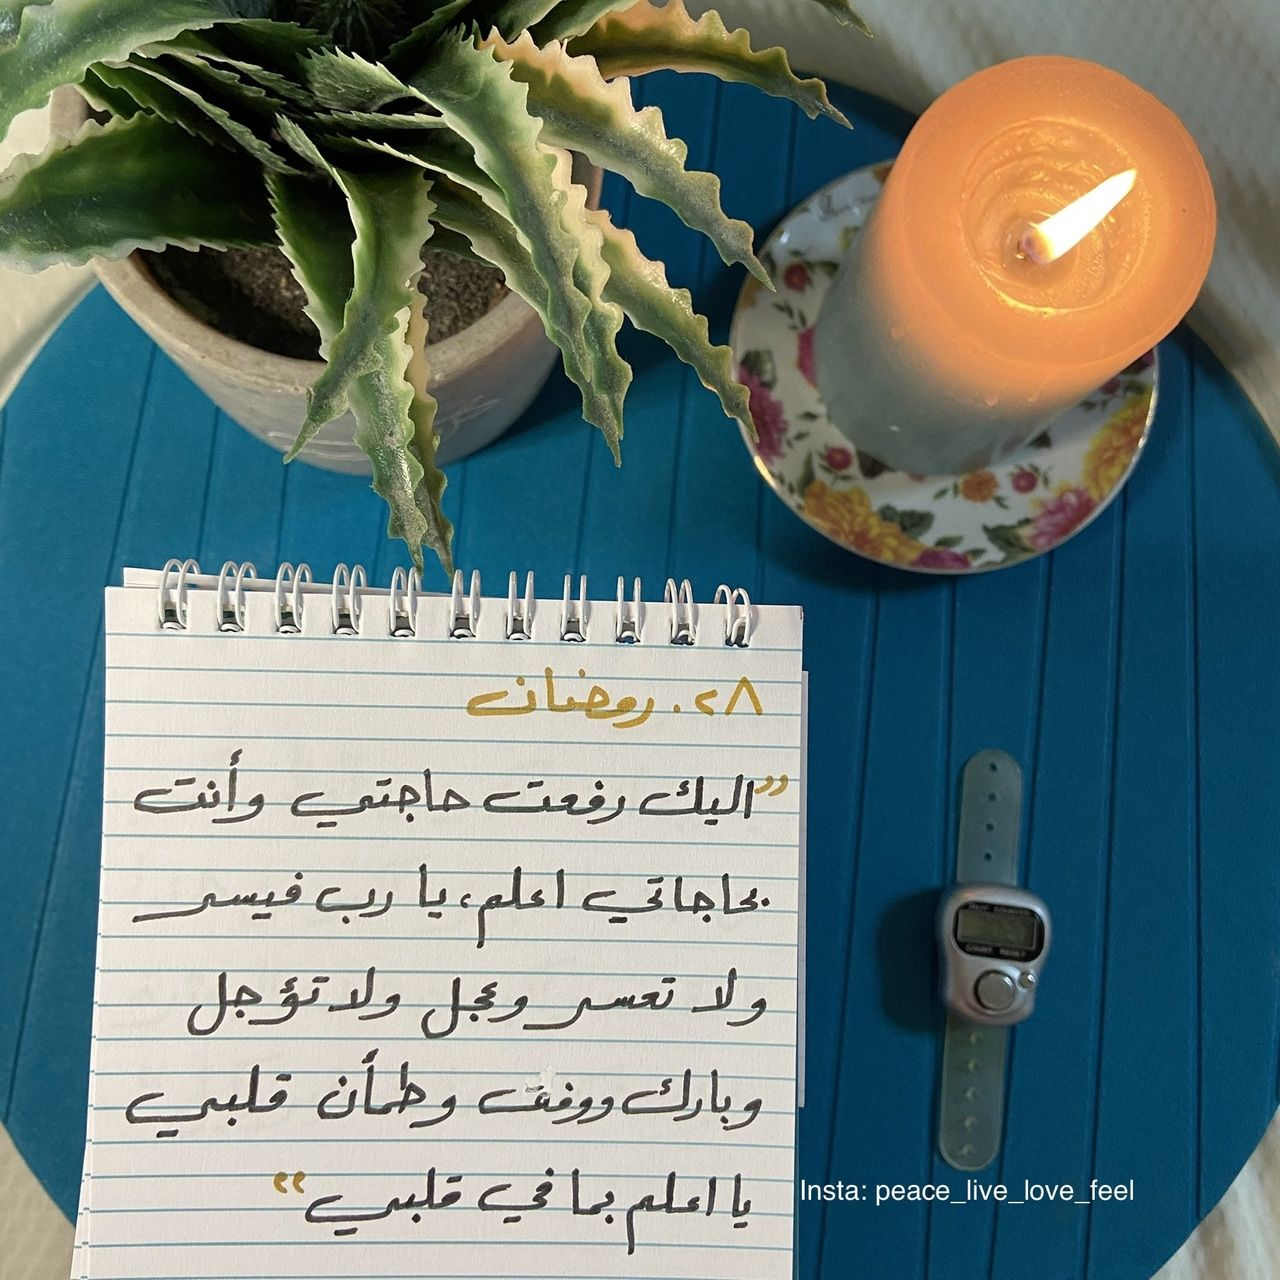 Image Discovered By Masa Soso Find Images And Videos About د ع اء ر م ض ان And رمضان كريم On We Heart It The App To Get Lost I We Heart It Soso Find Image